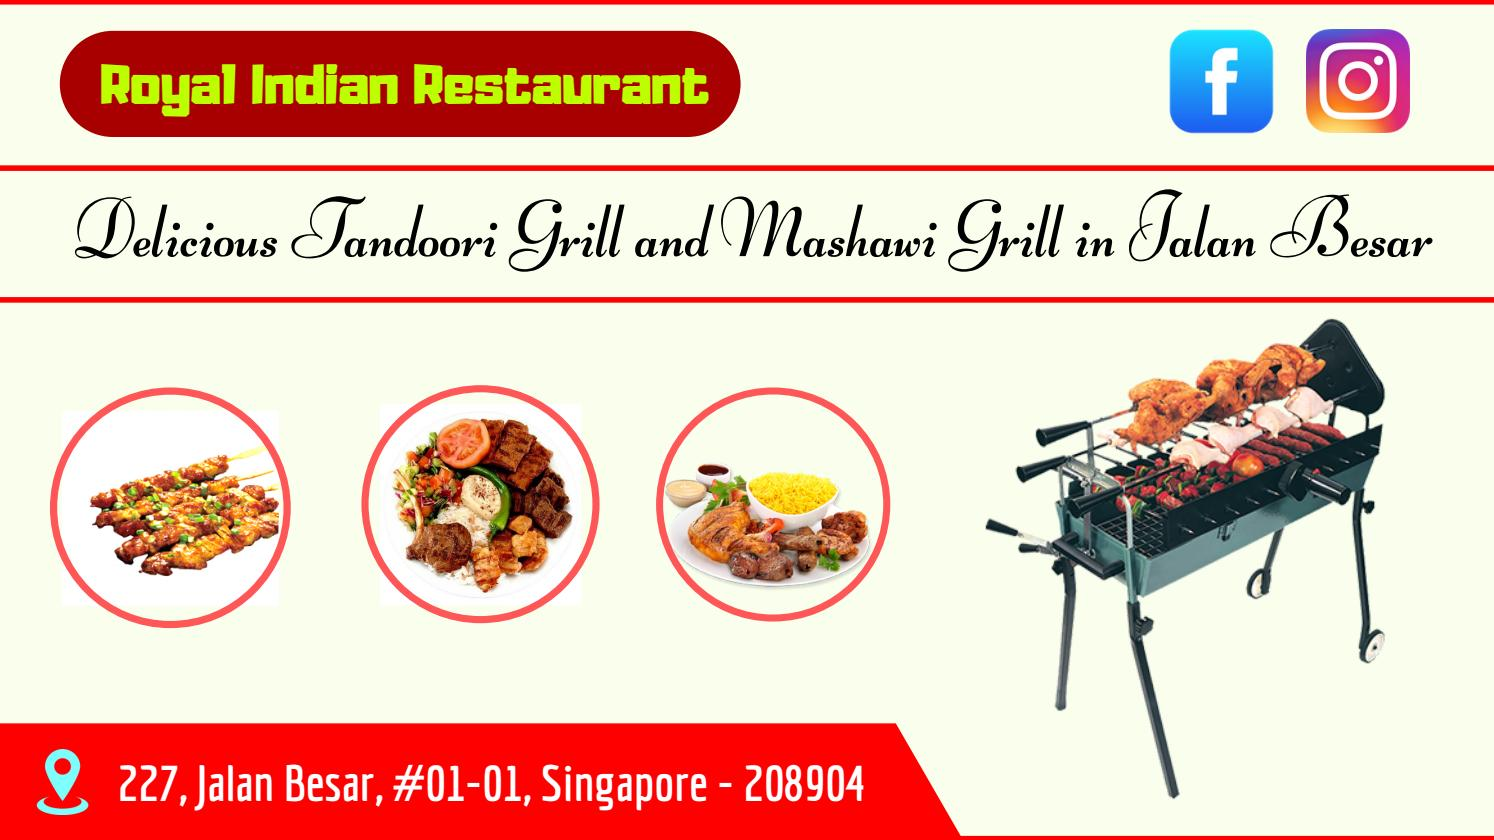 Delicious Tandoori Grill And Mashawi Grill In Jalan Besar By Royal Indian Restaurant Issuu